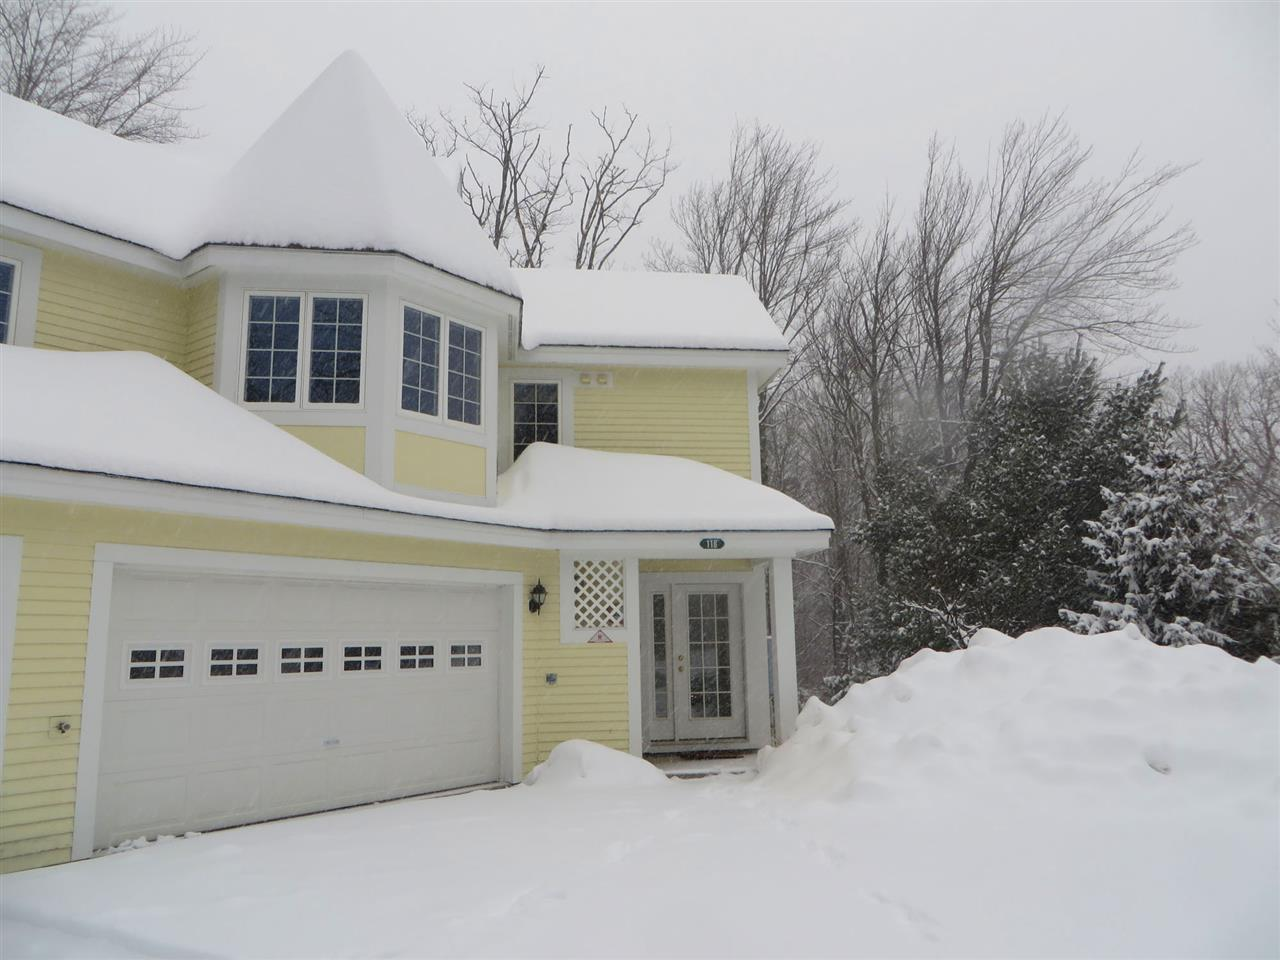 Mount-Snow-Real-Estate-4618029-0